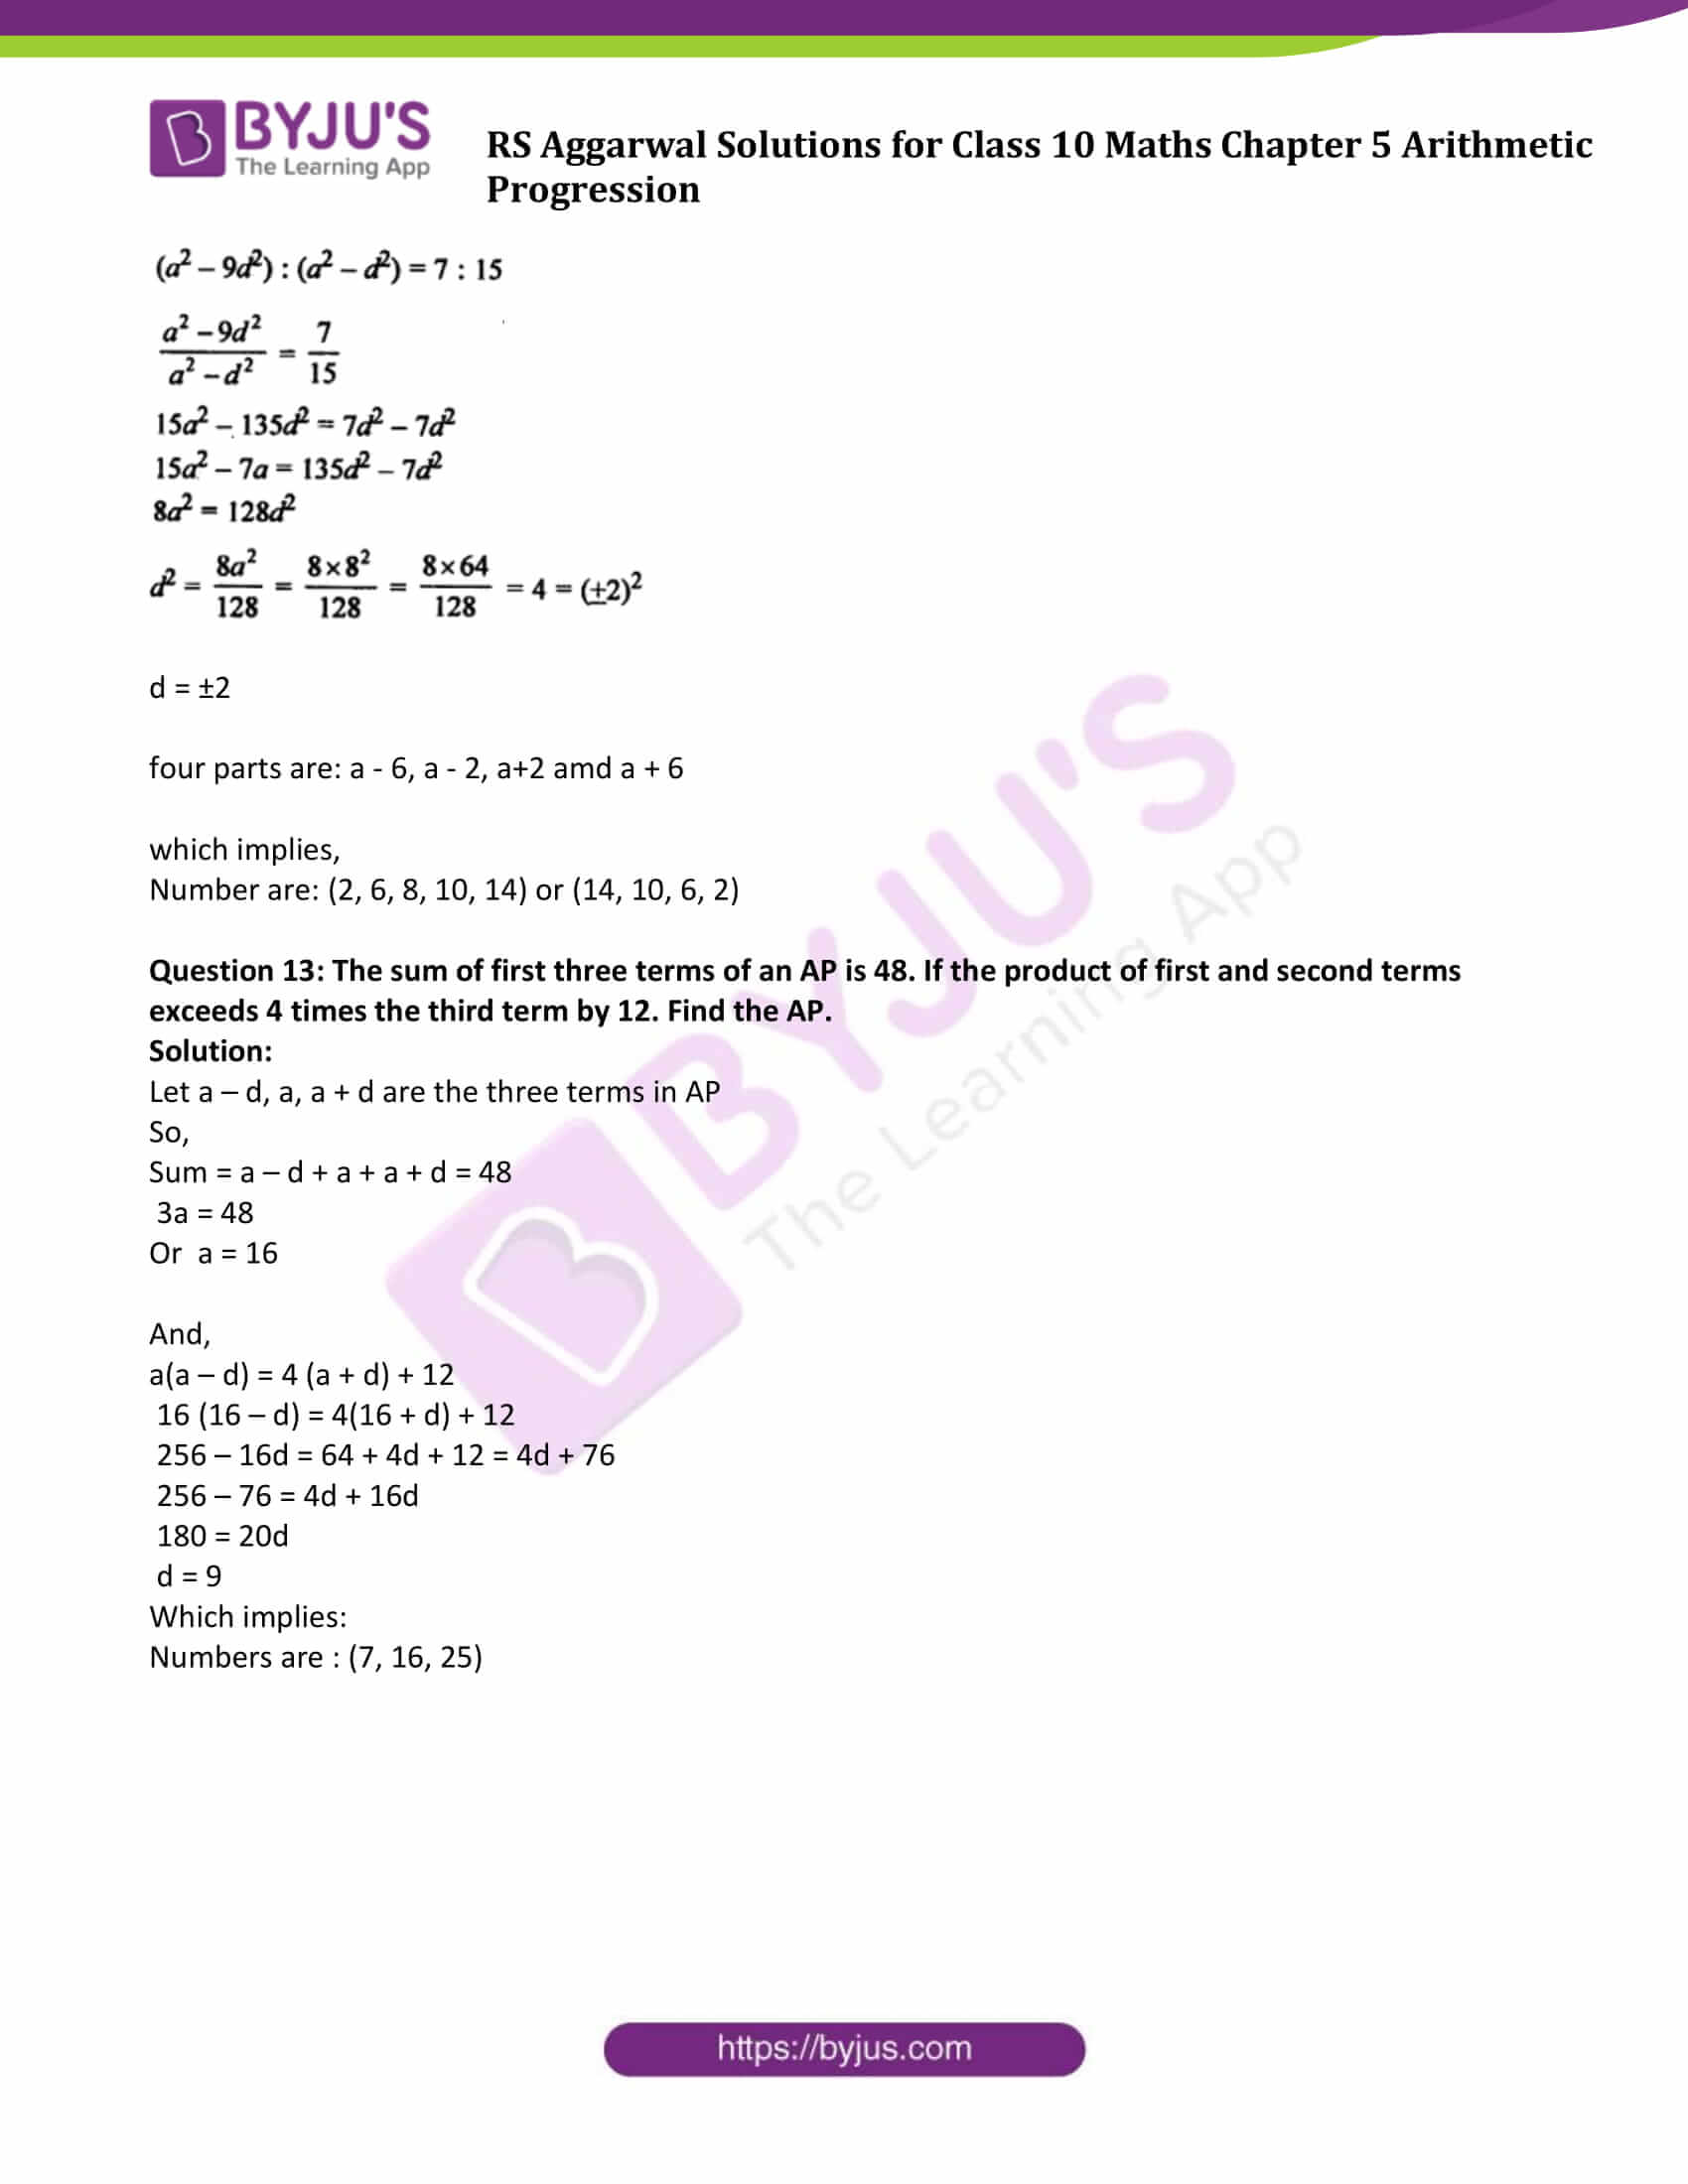 RS Aggarwal Sol class 10 Maths Chapter 5B